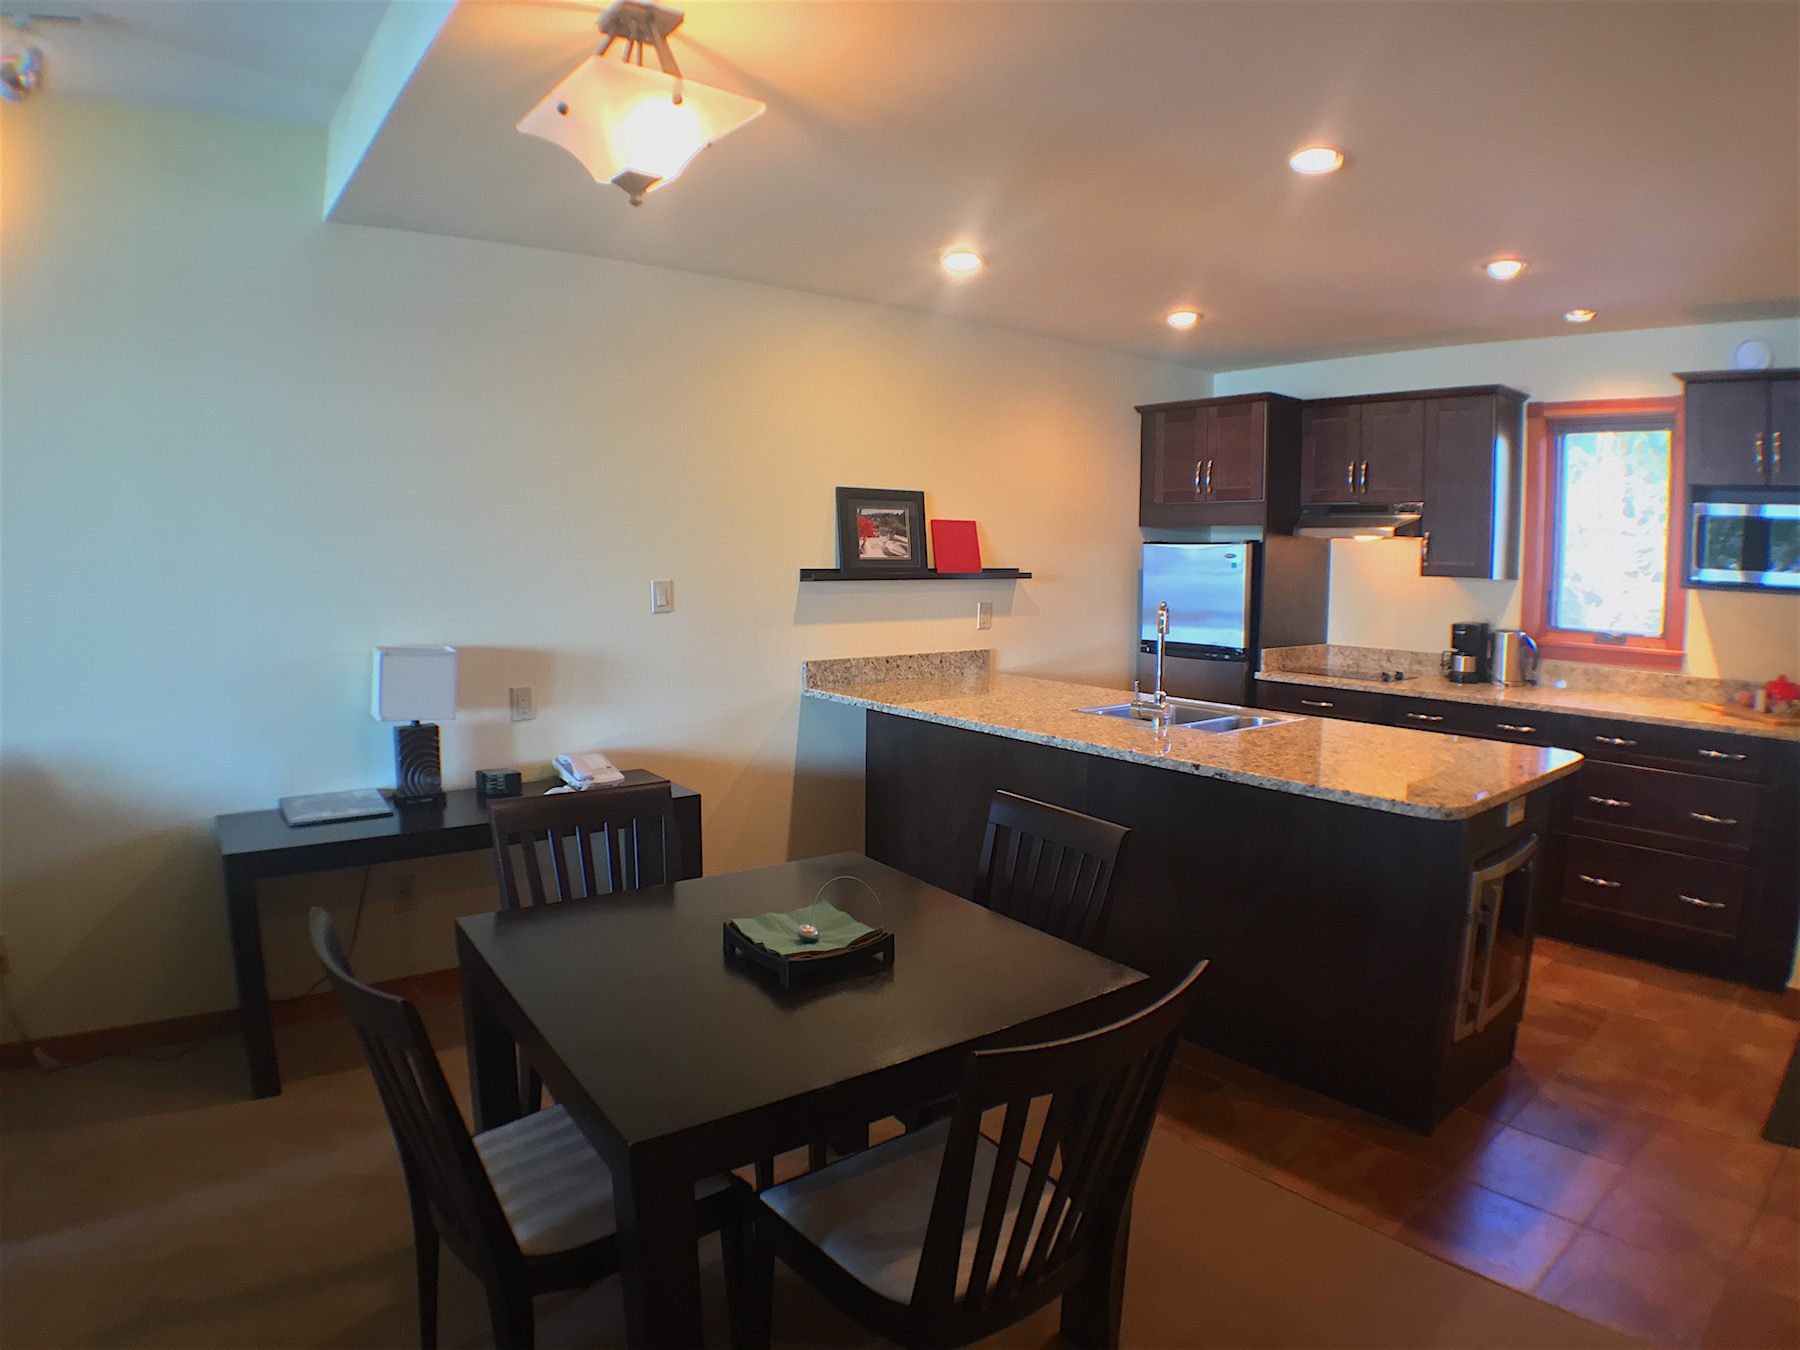 KITCHEN:DINING ROOM.jpg